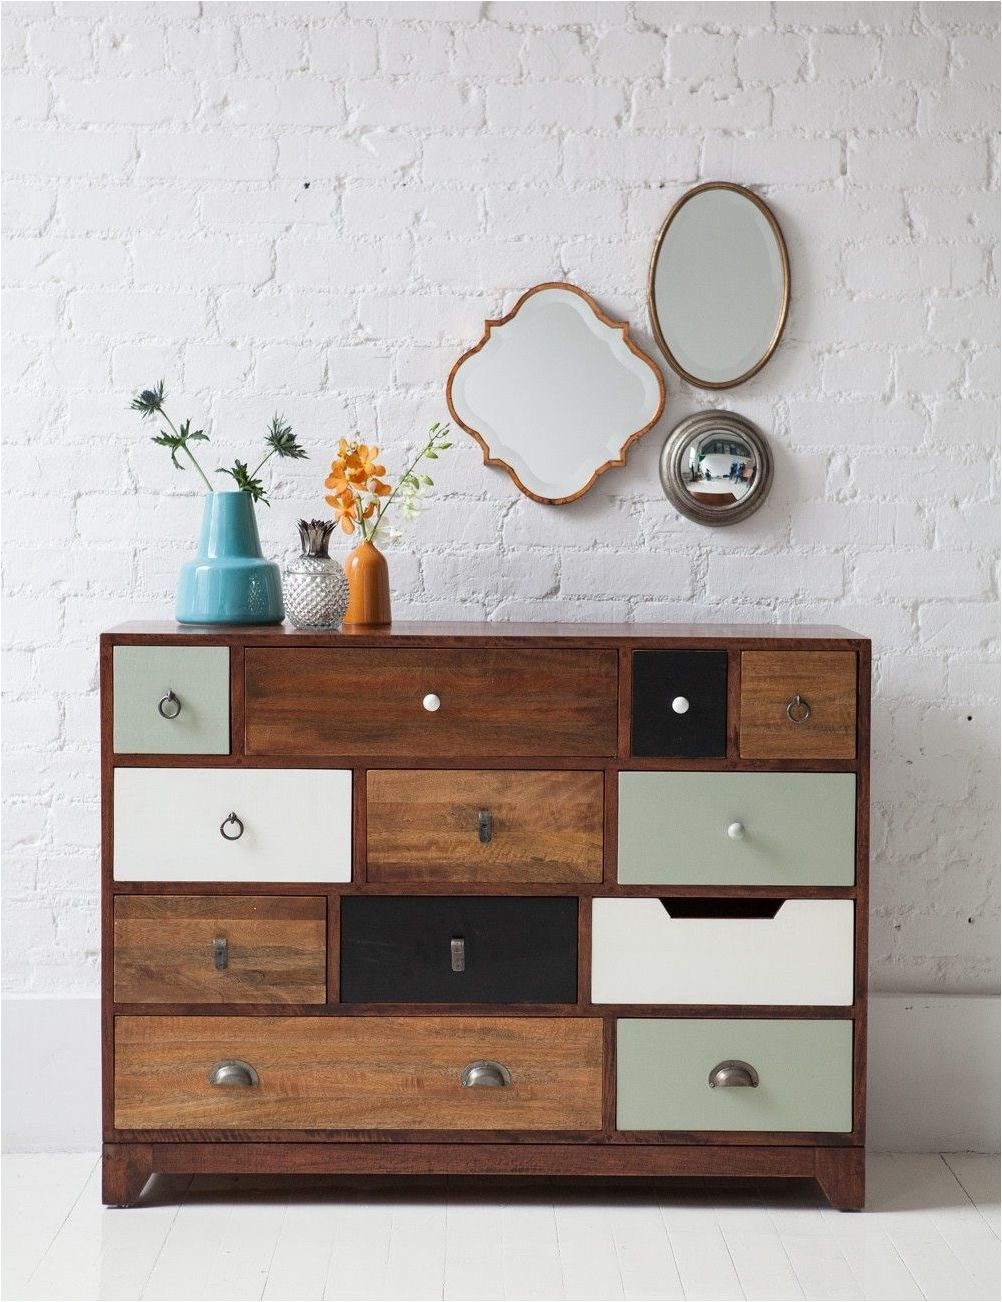 Bedroom furniture diy really transform and make your perfect